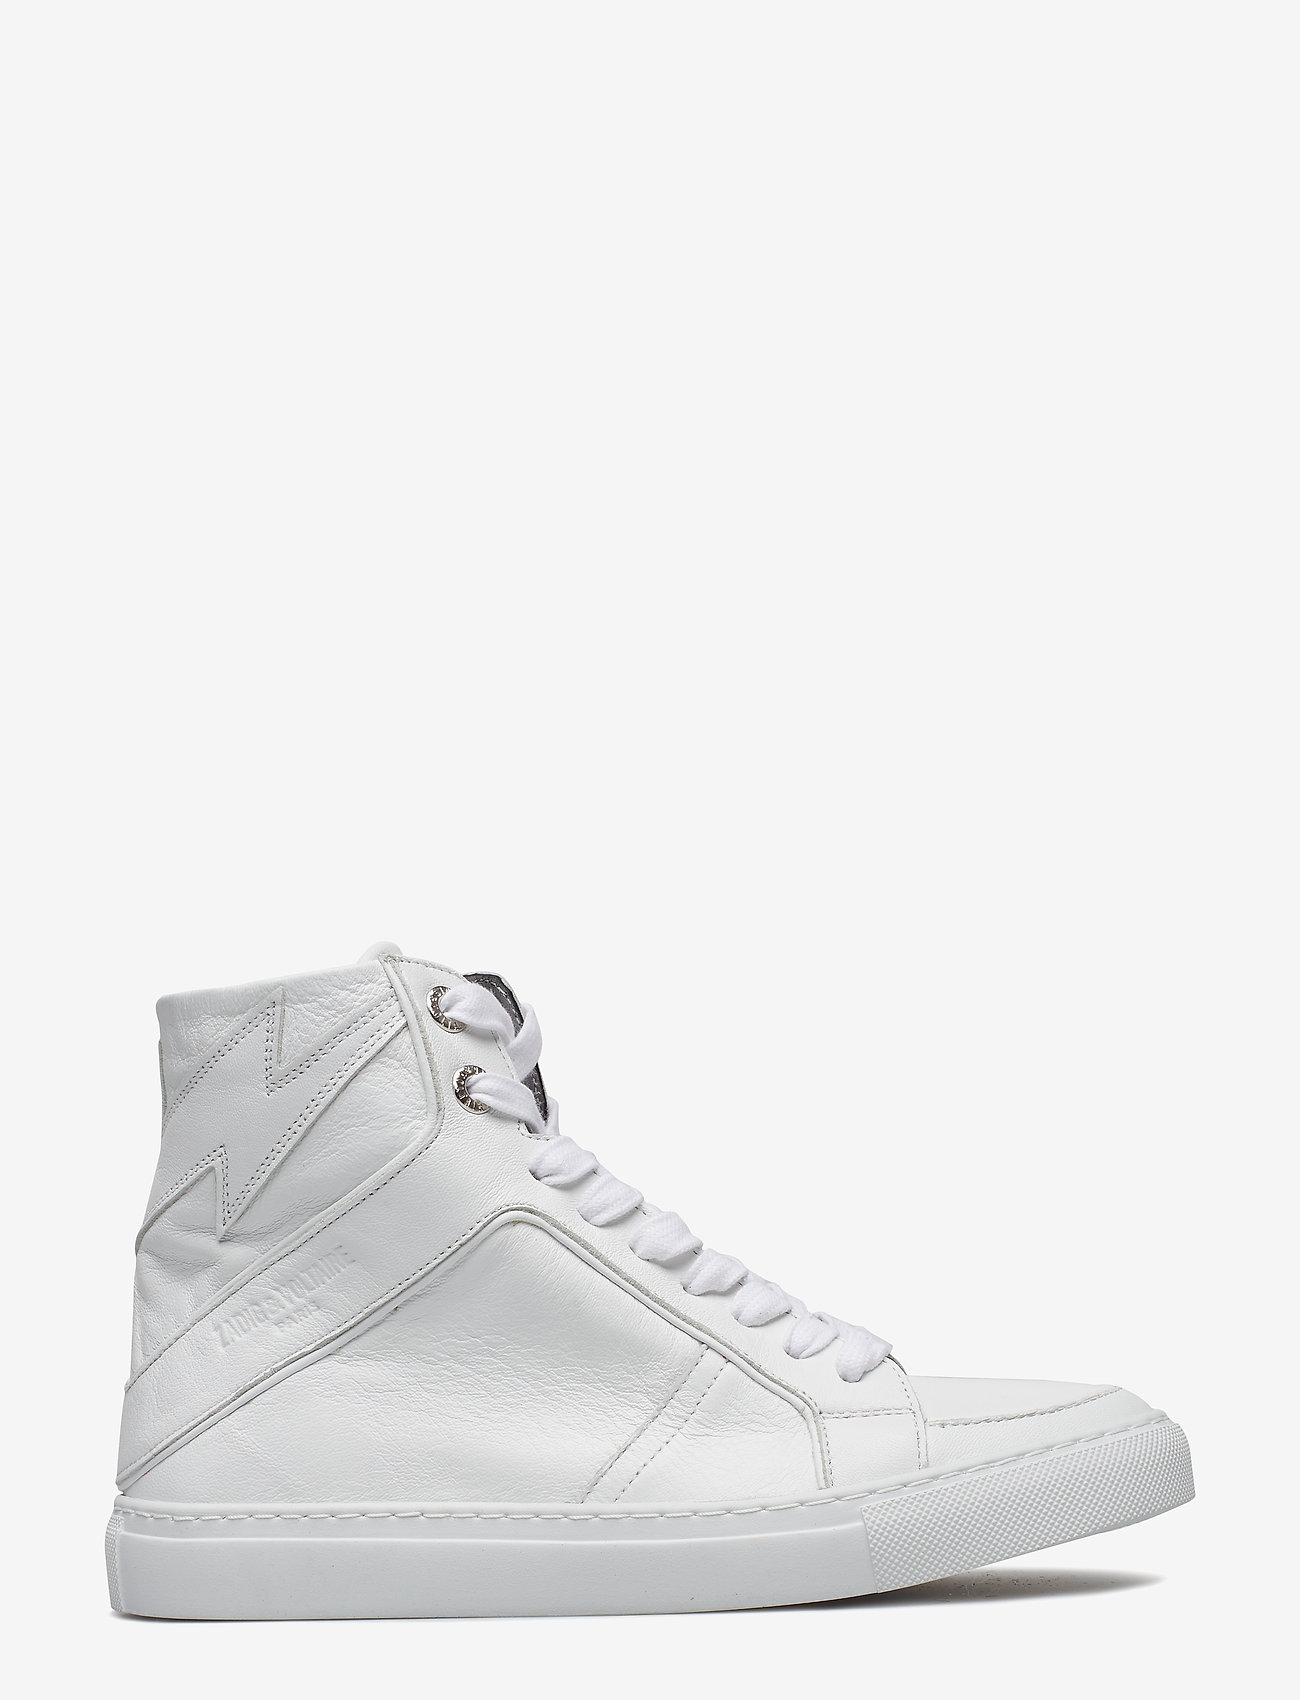 Zadig & Voltaire - ZV1747 HIGH FLASH SHOES - høje sneakers - white - 1